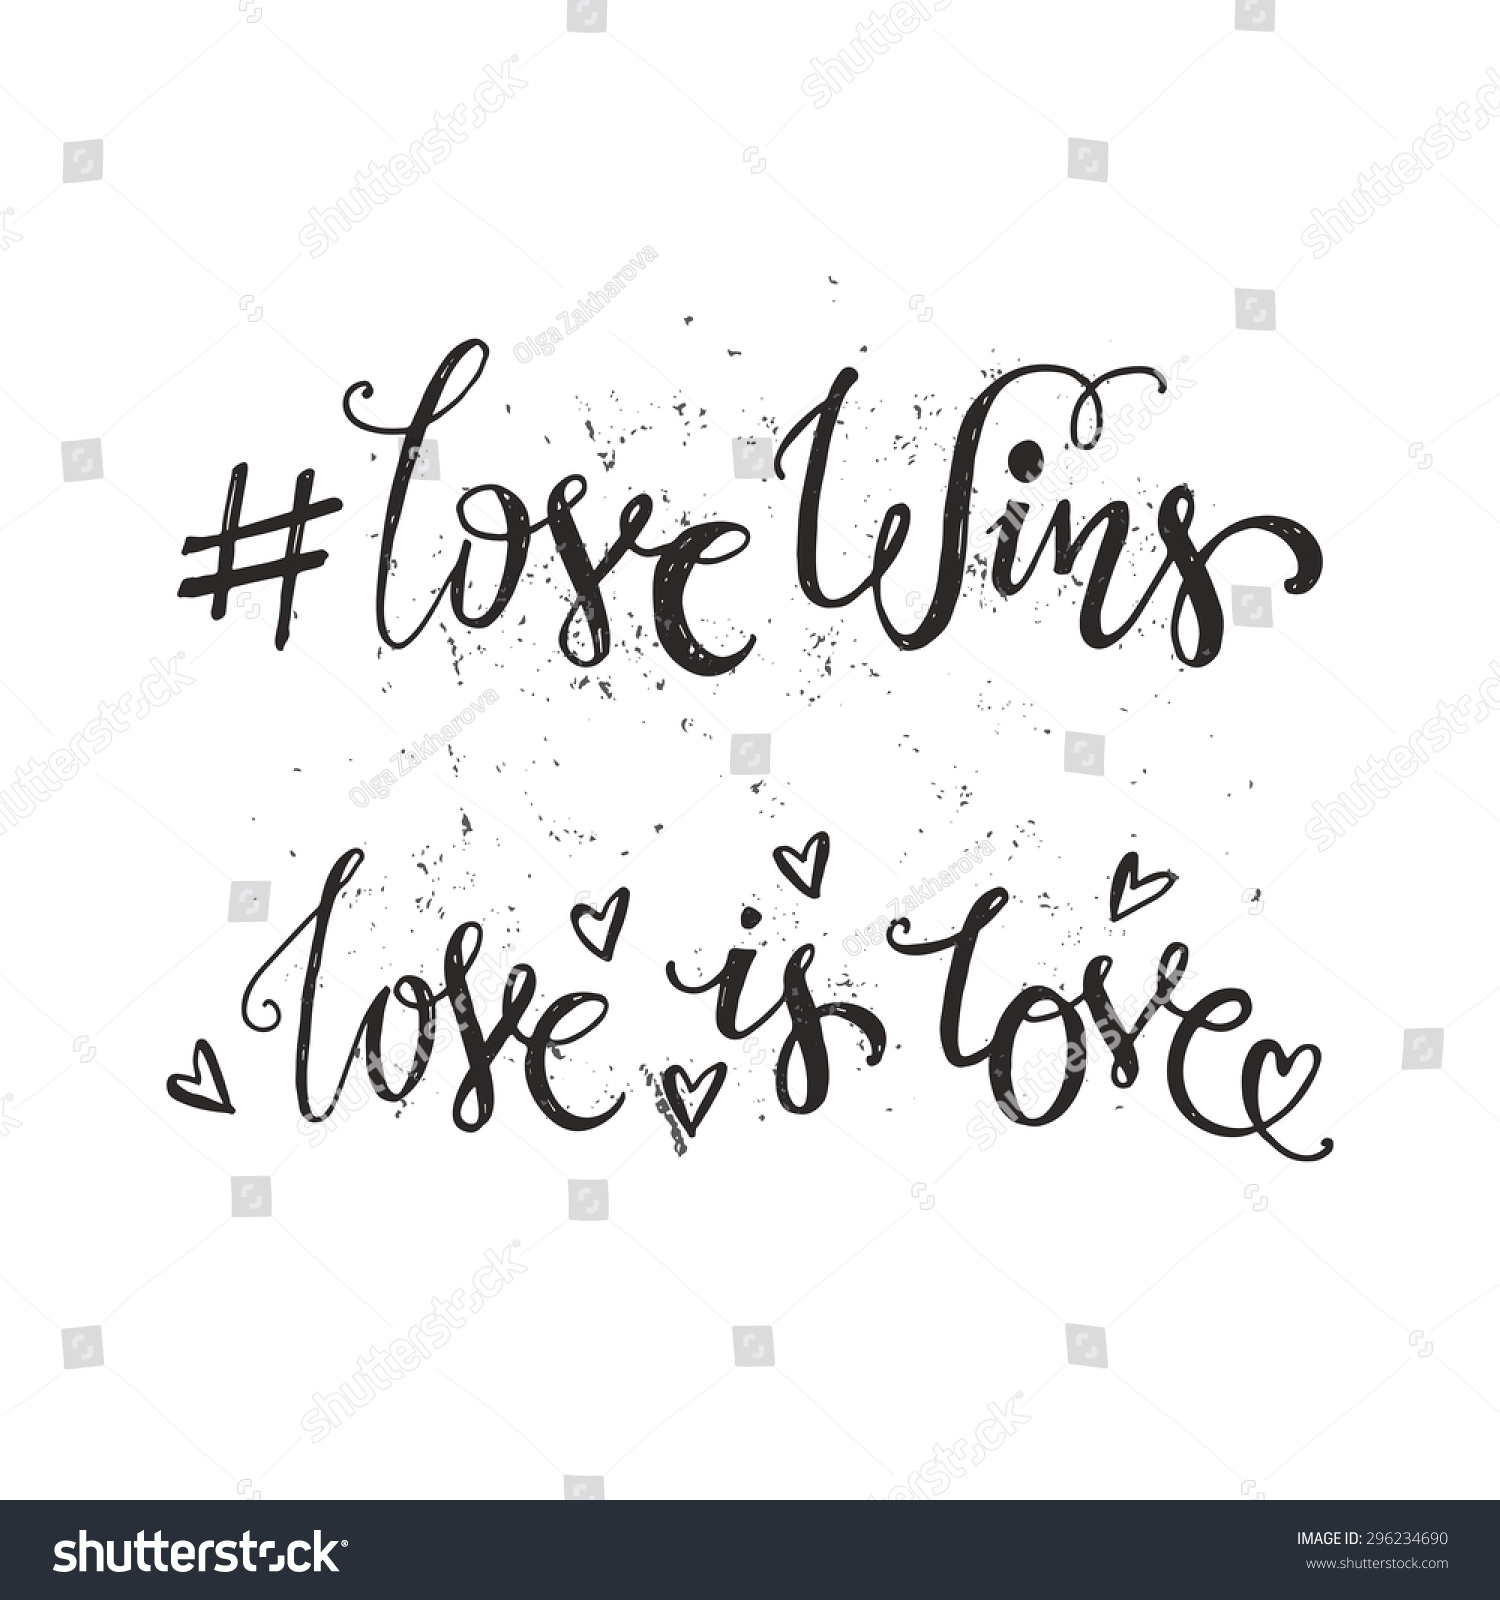 Community Quotes Handdrawn Quotes Love Wins Love Love Stock Vector 296234690